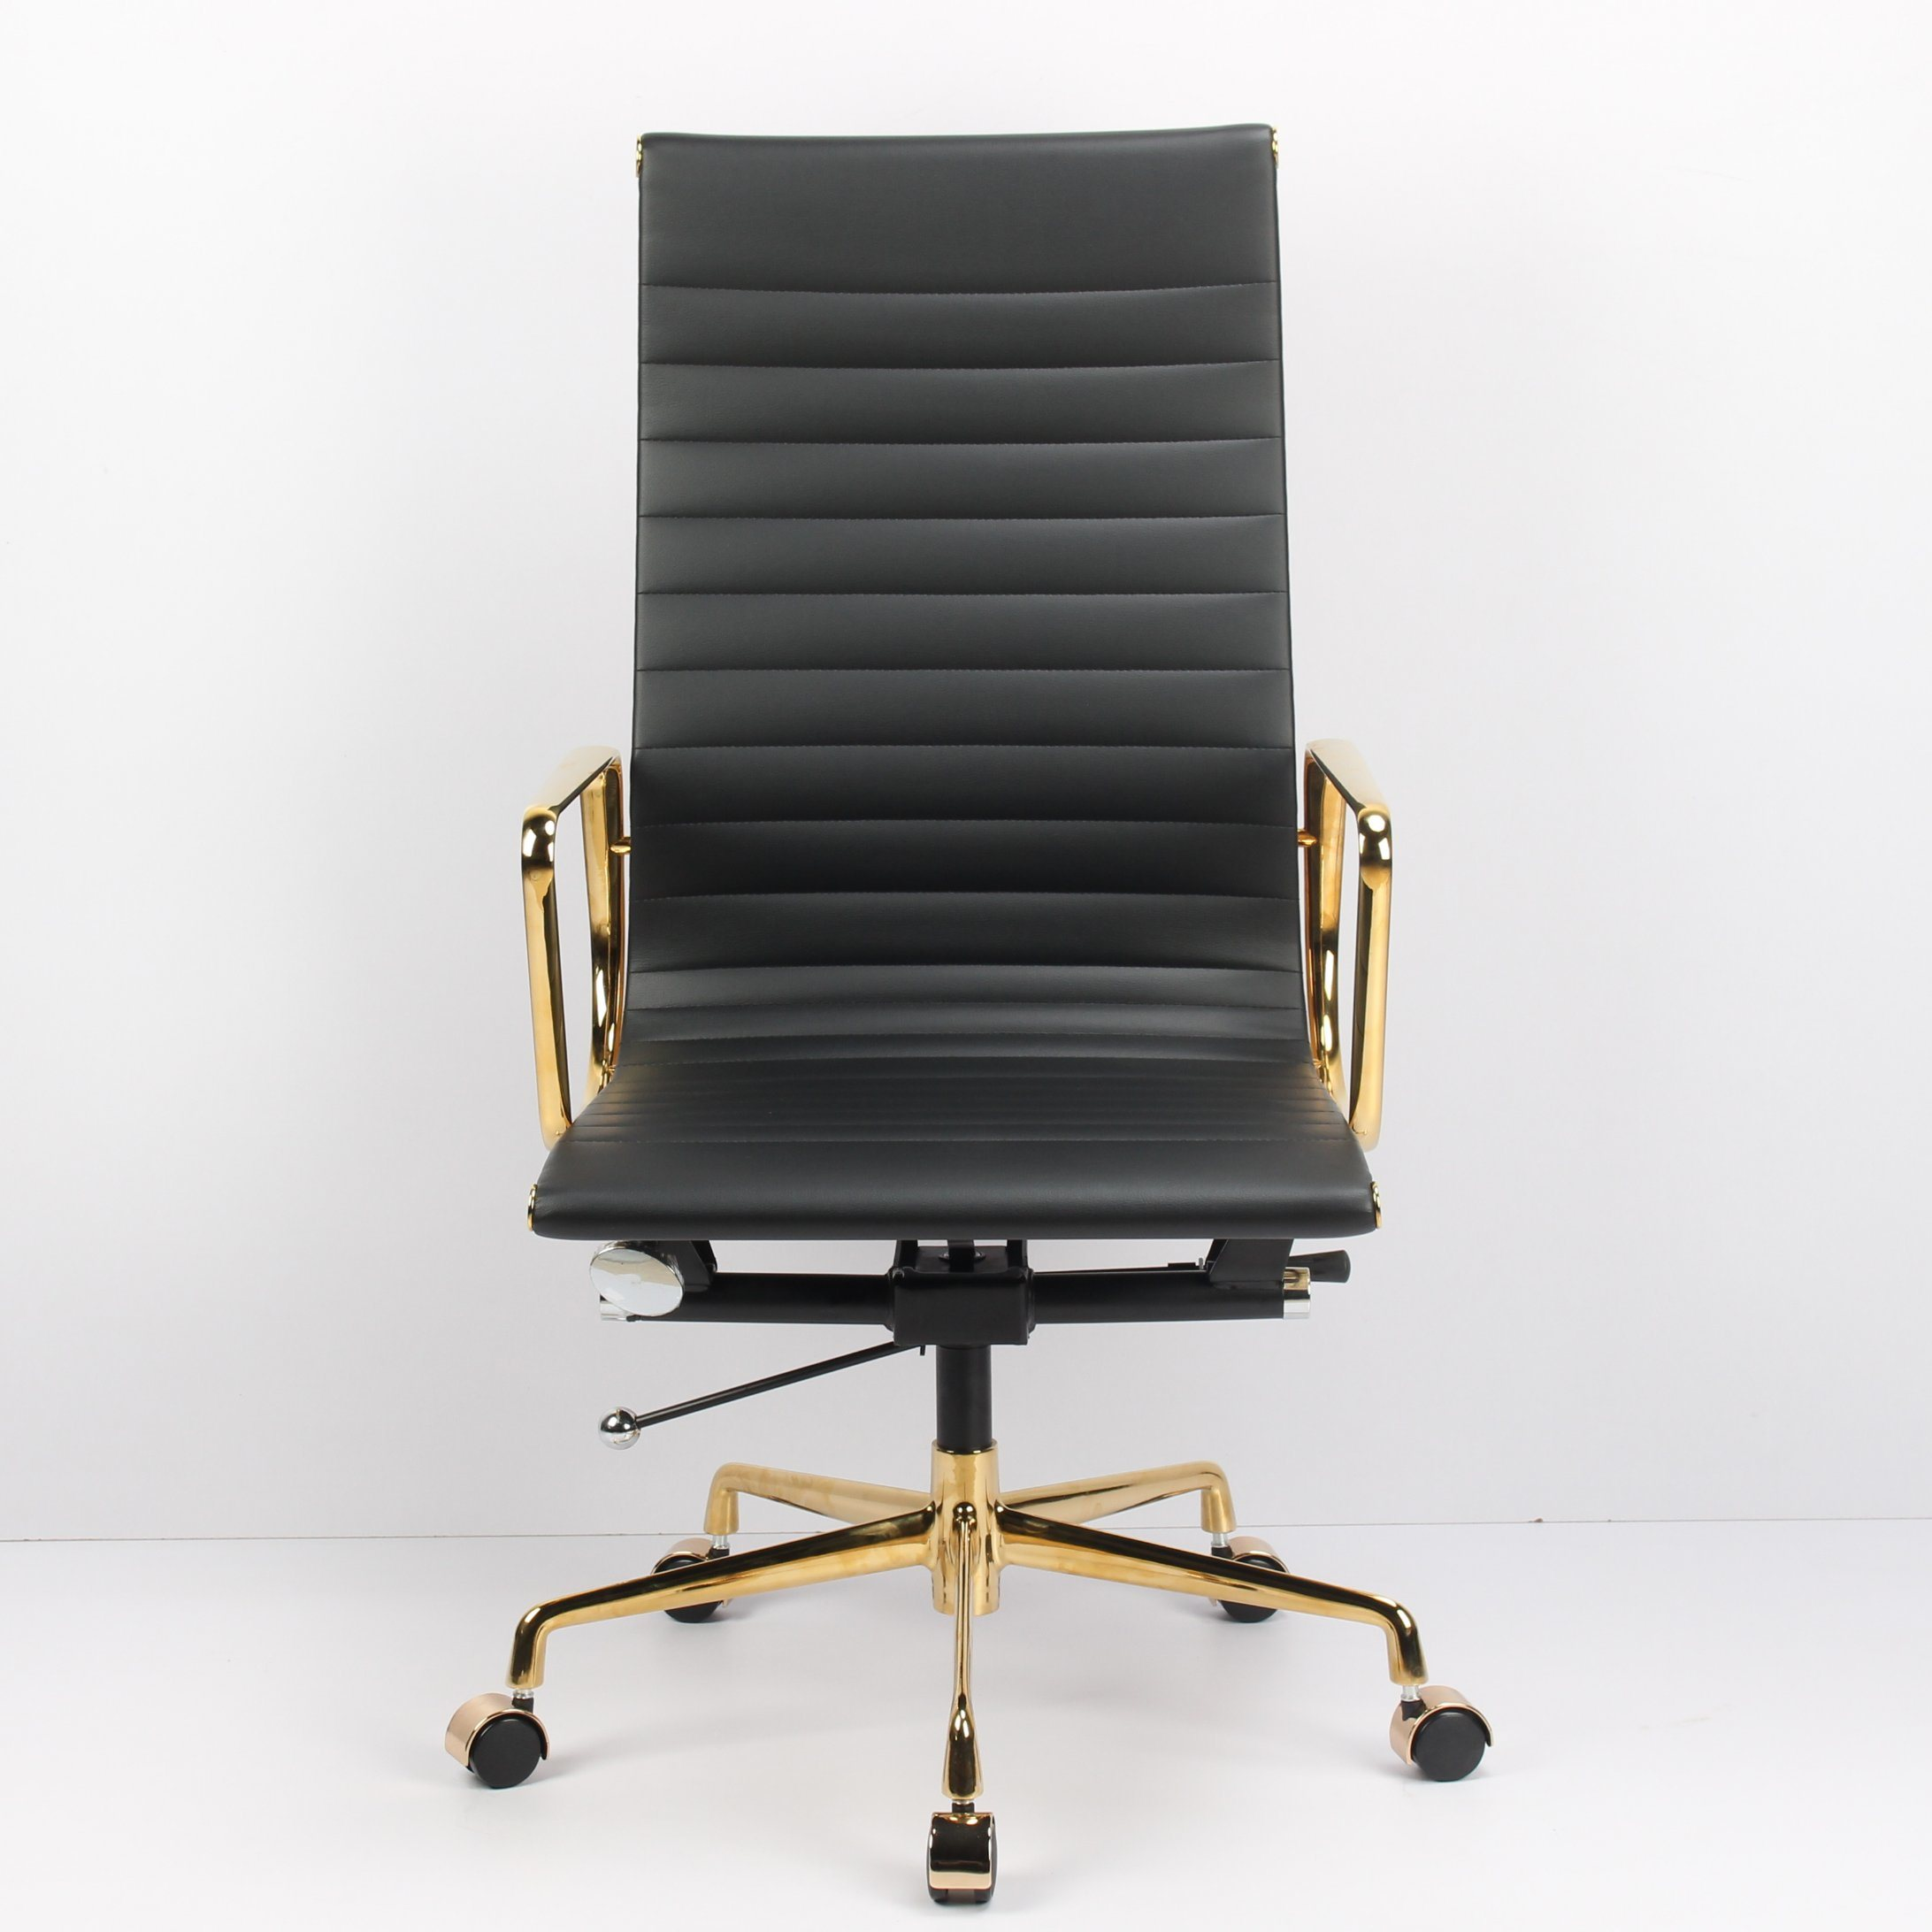 Prime Hot Item Ti Eames Office Chair Computer Chair Home Simple Ergonomic Modern Lift Chair Forskolin Free Trial Chair Design Images Forskolin Free Trialorg